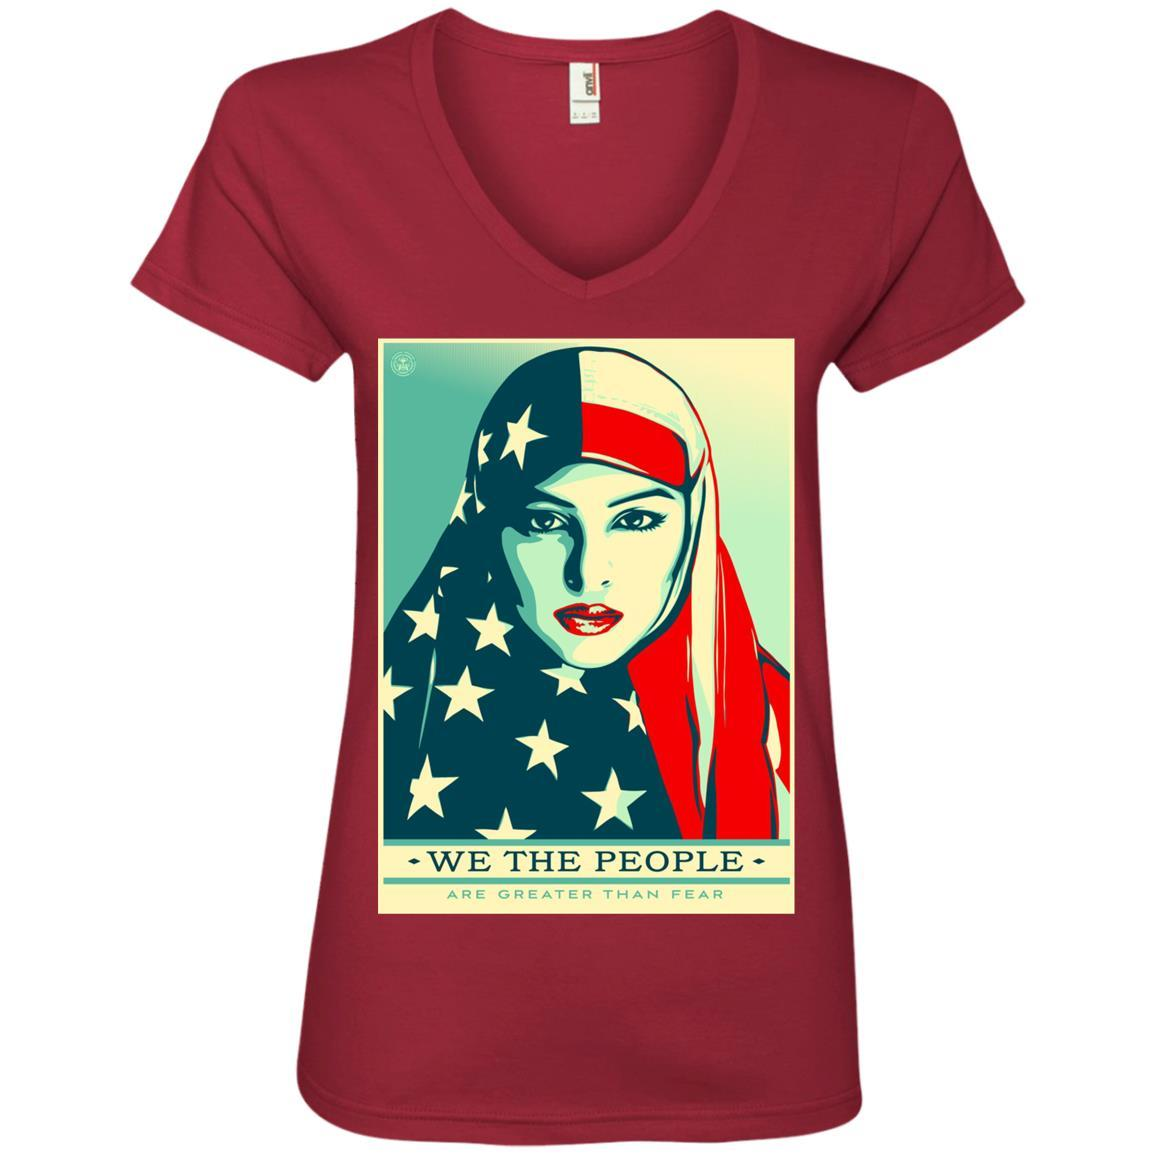 we the people are greater than fear - Anvil Ladies' V-Neck T-Shirt Style / Color / Size